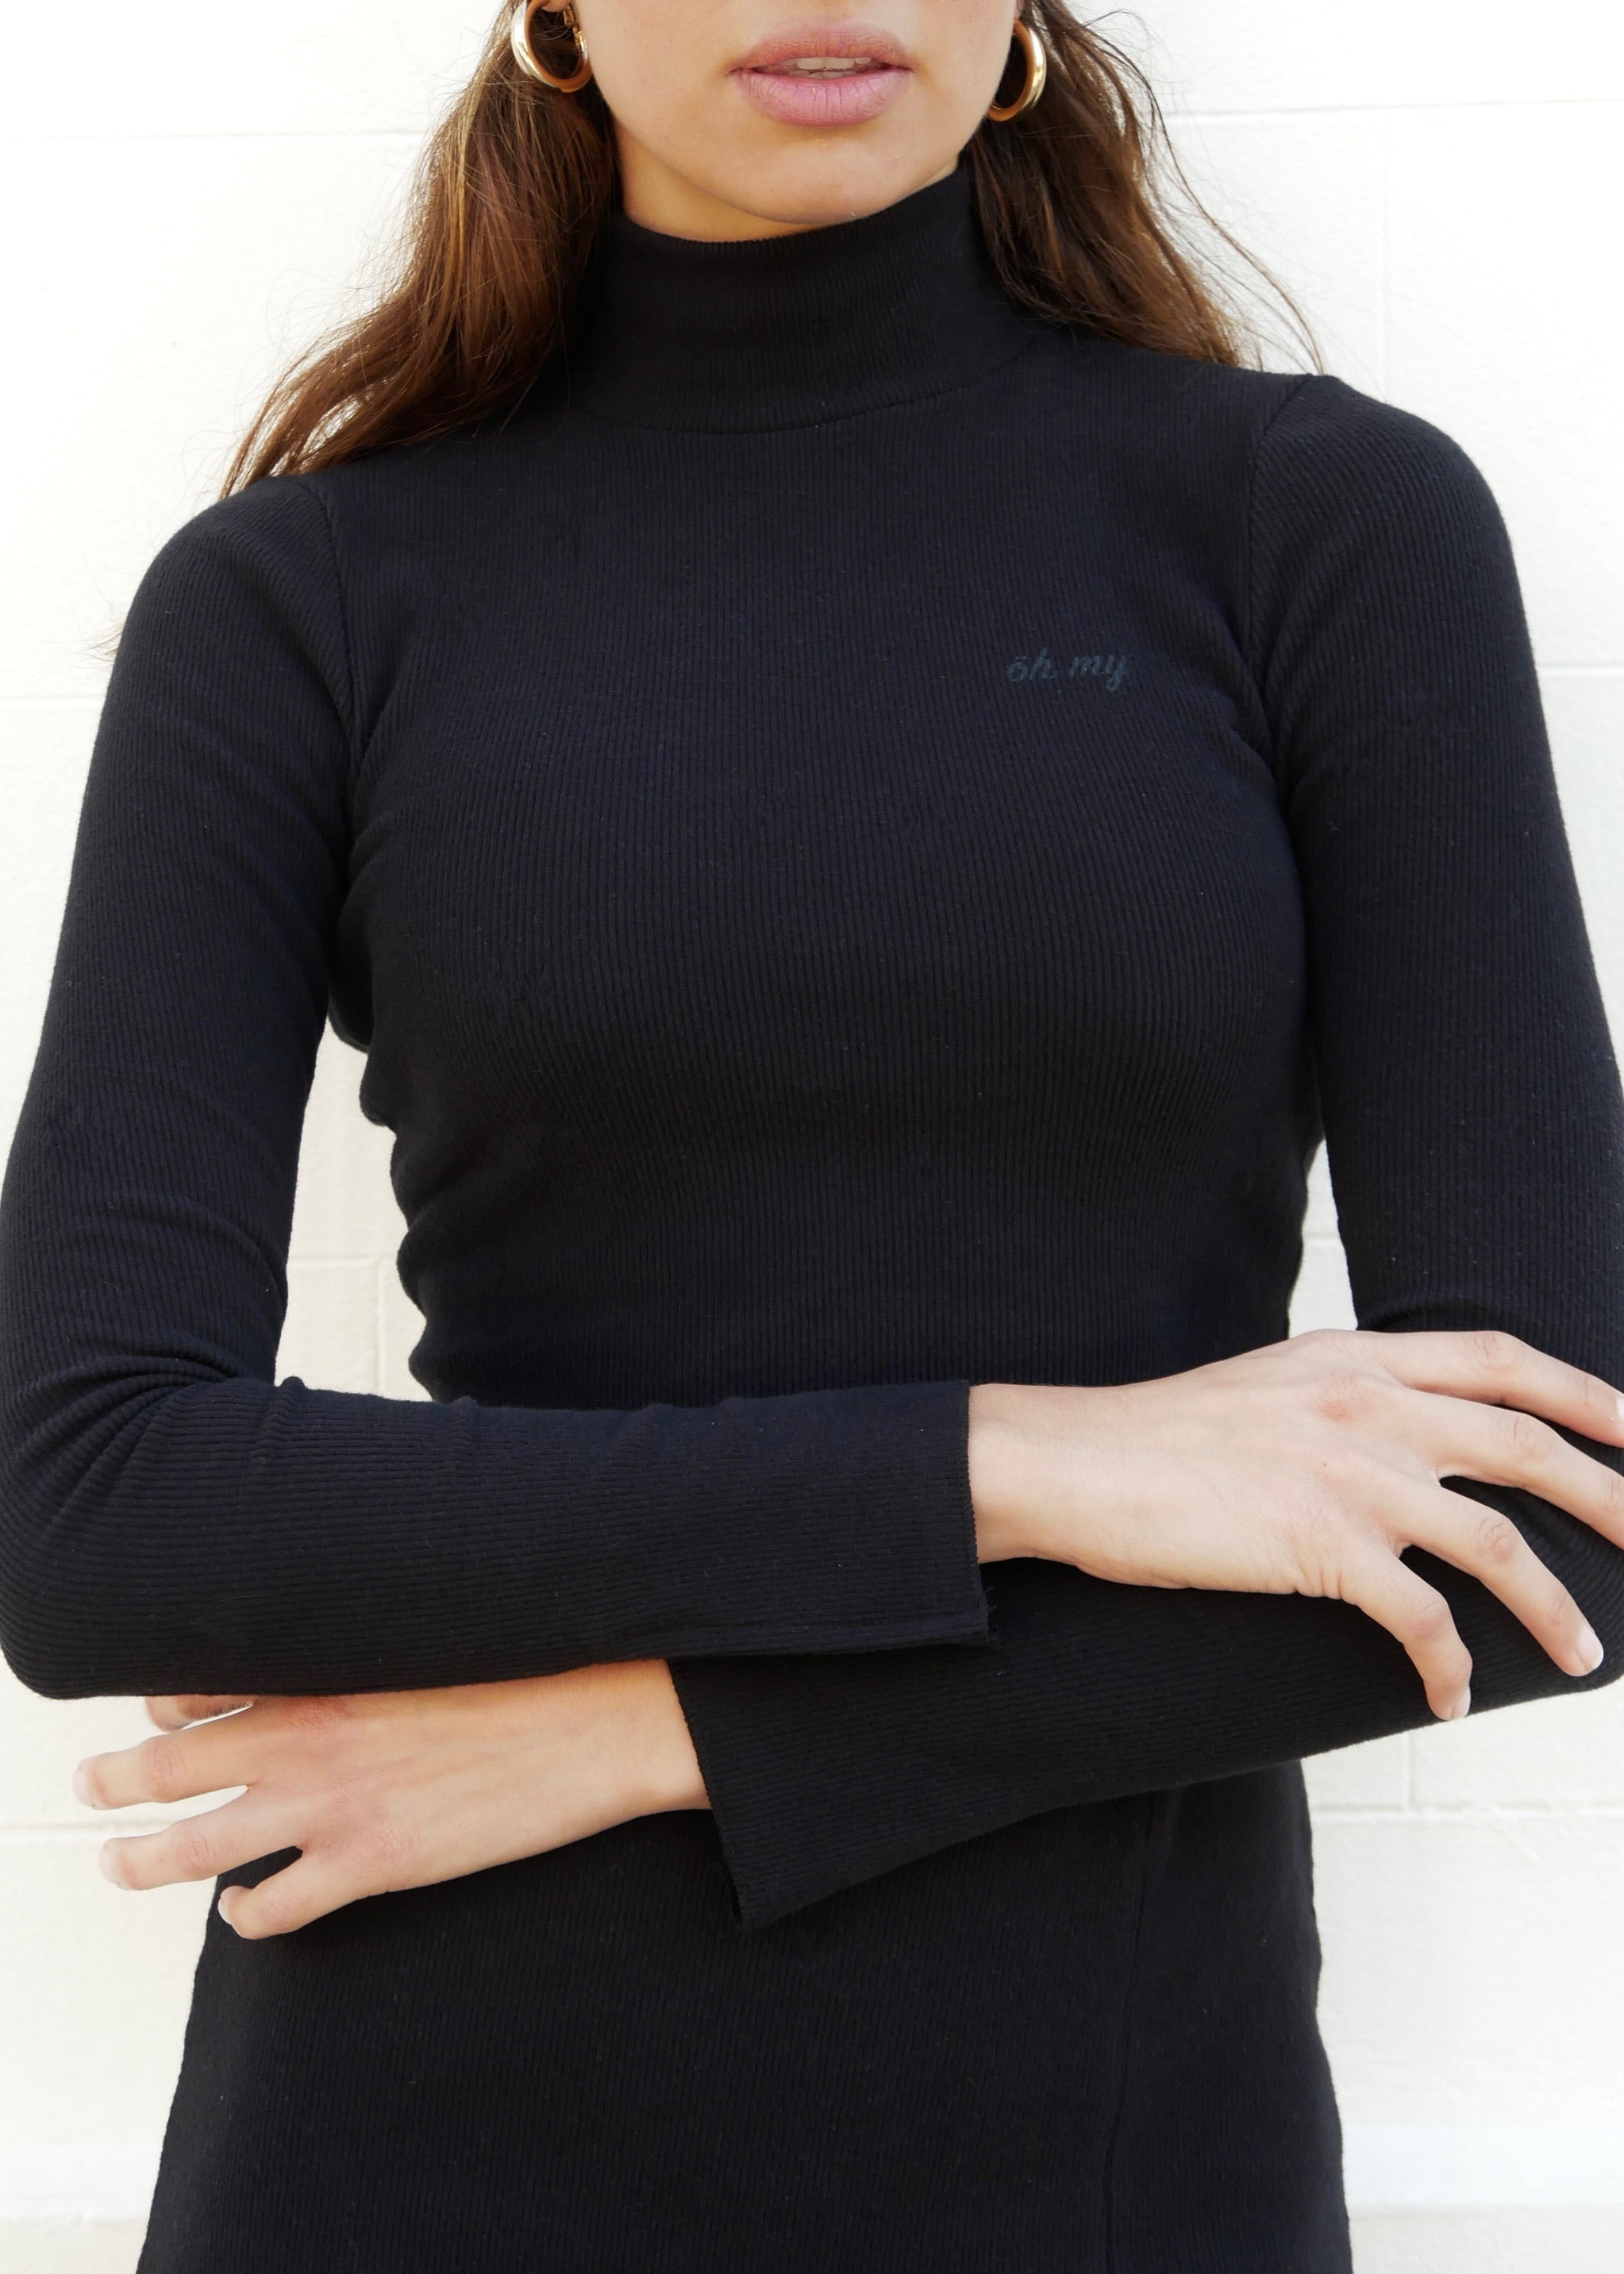 ORGANIC TOP IN BLACK